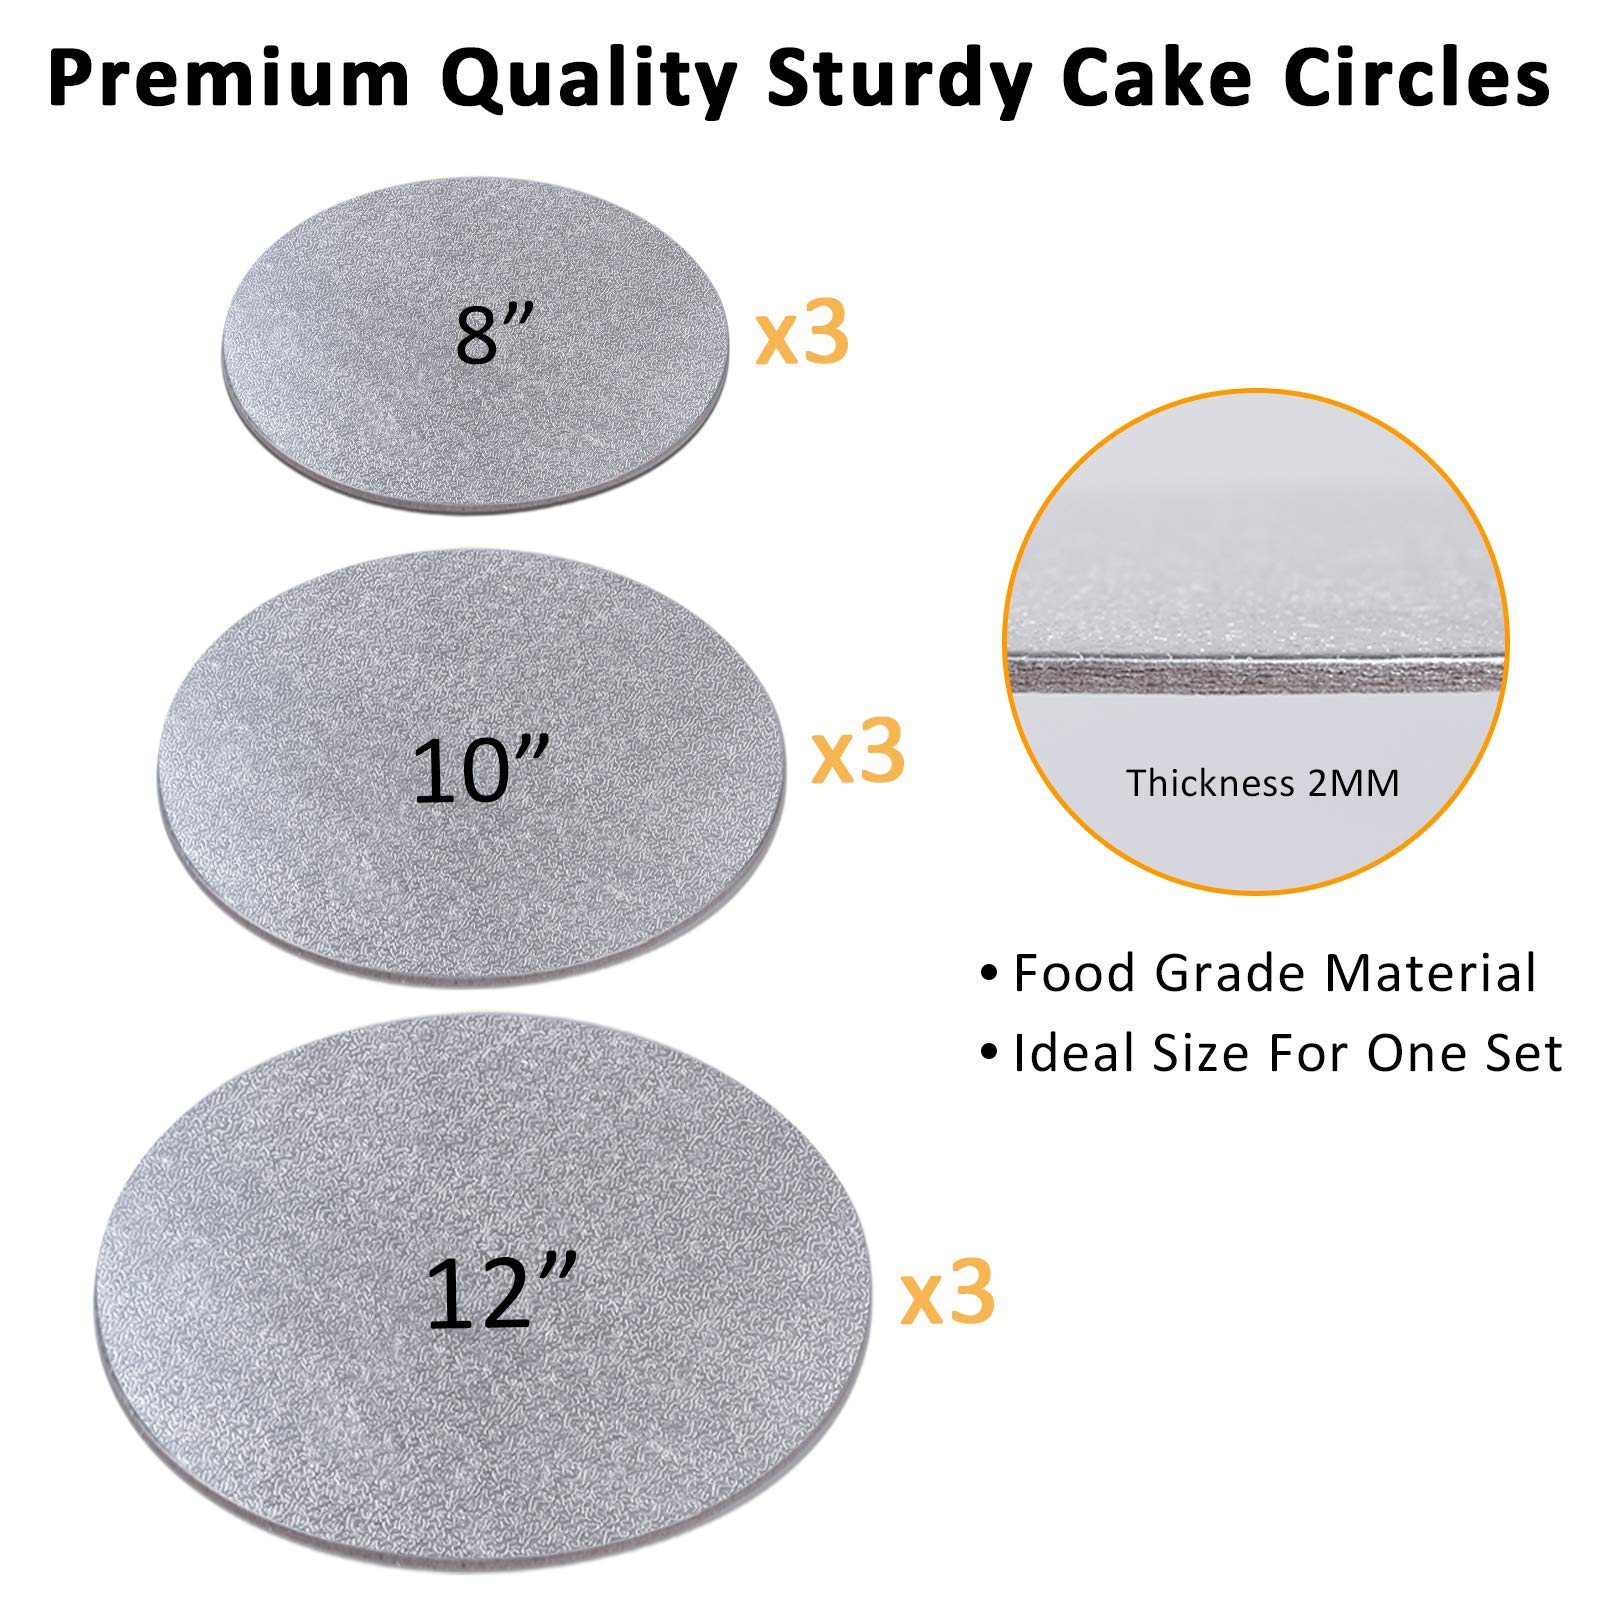 Cake Boards Sliver Foil Round Cake Circles 8, 10, 12 Inch Cake Base Cardboard, 3 of Each Size Set, with 2pcs Plastic Scrapers for Baking Cake (12 Pack)